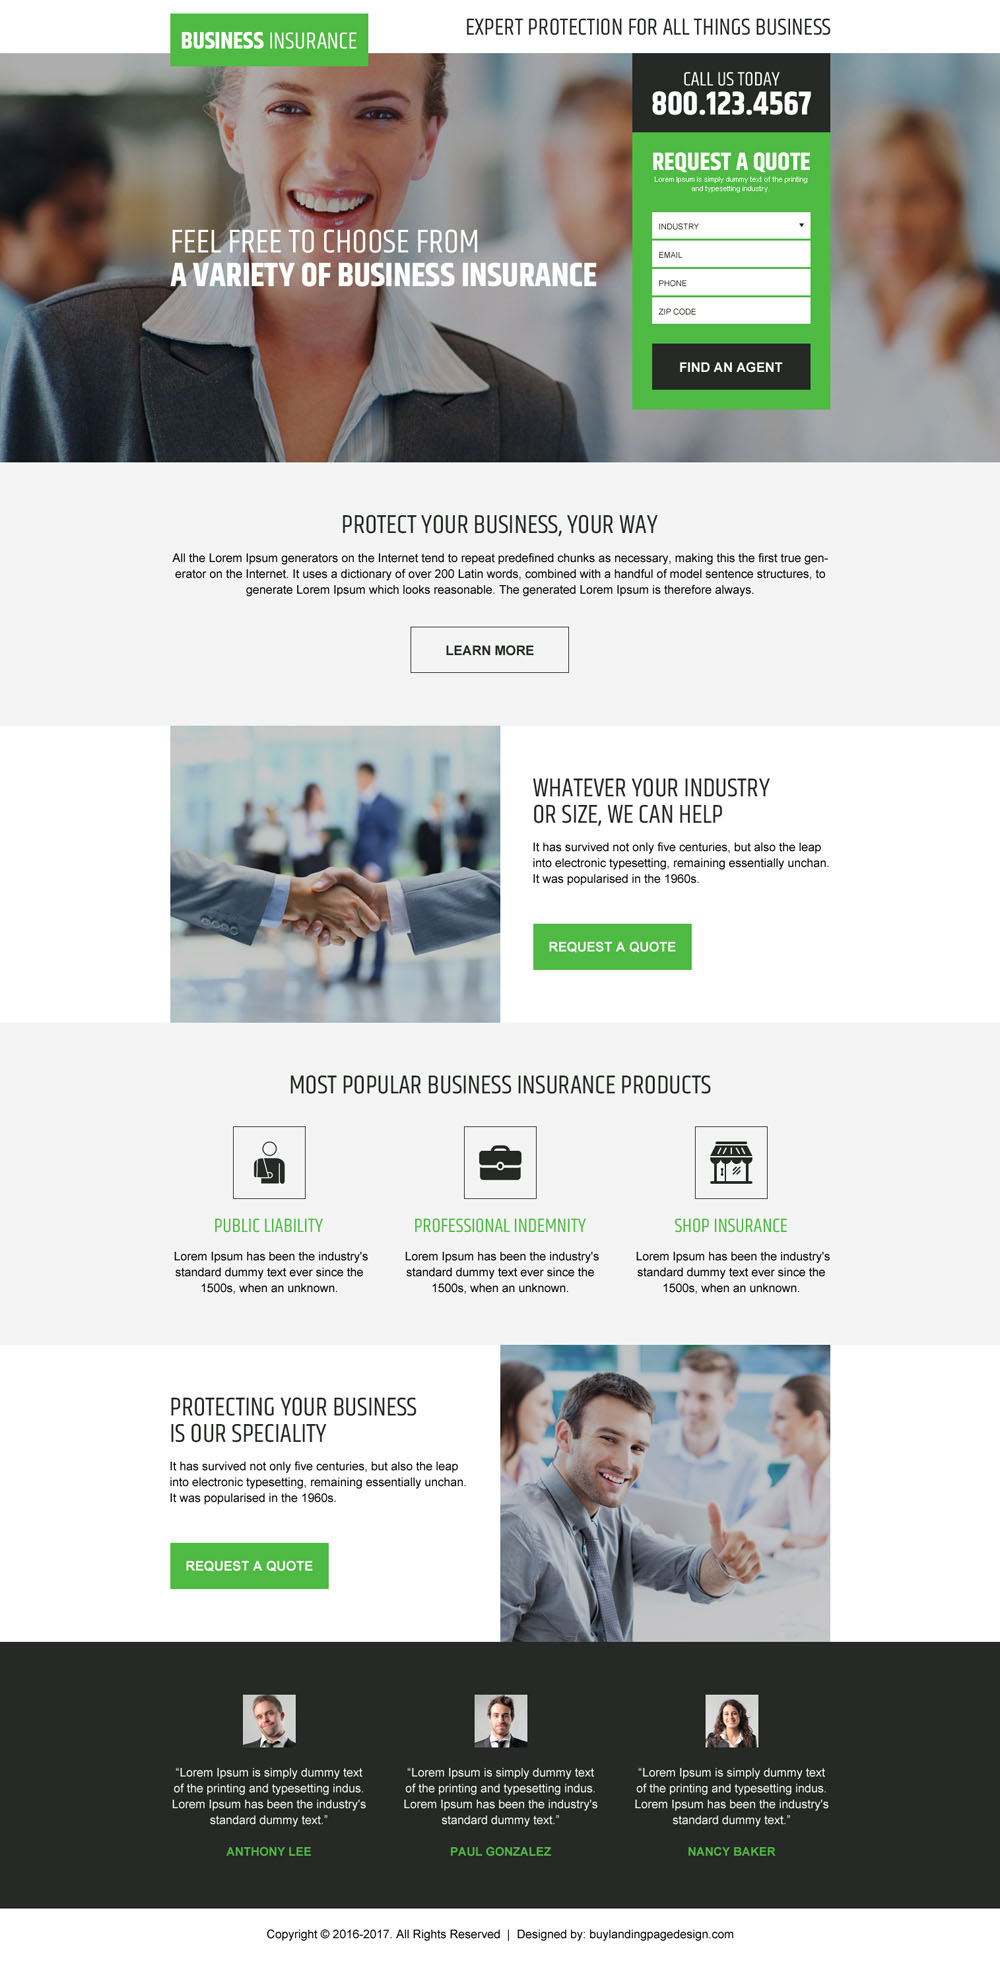 business-insurance-free-quote-lead-gen-landing-page-for-your-business-02